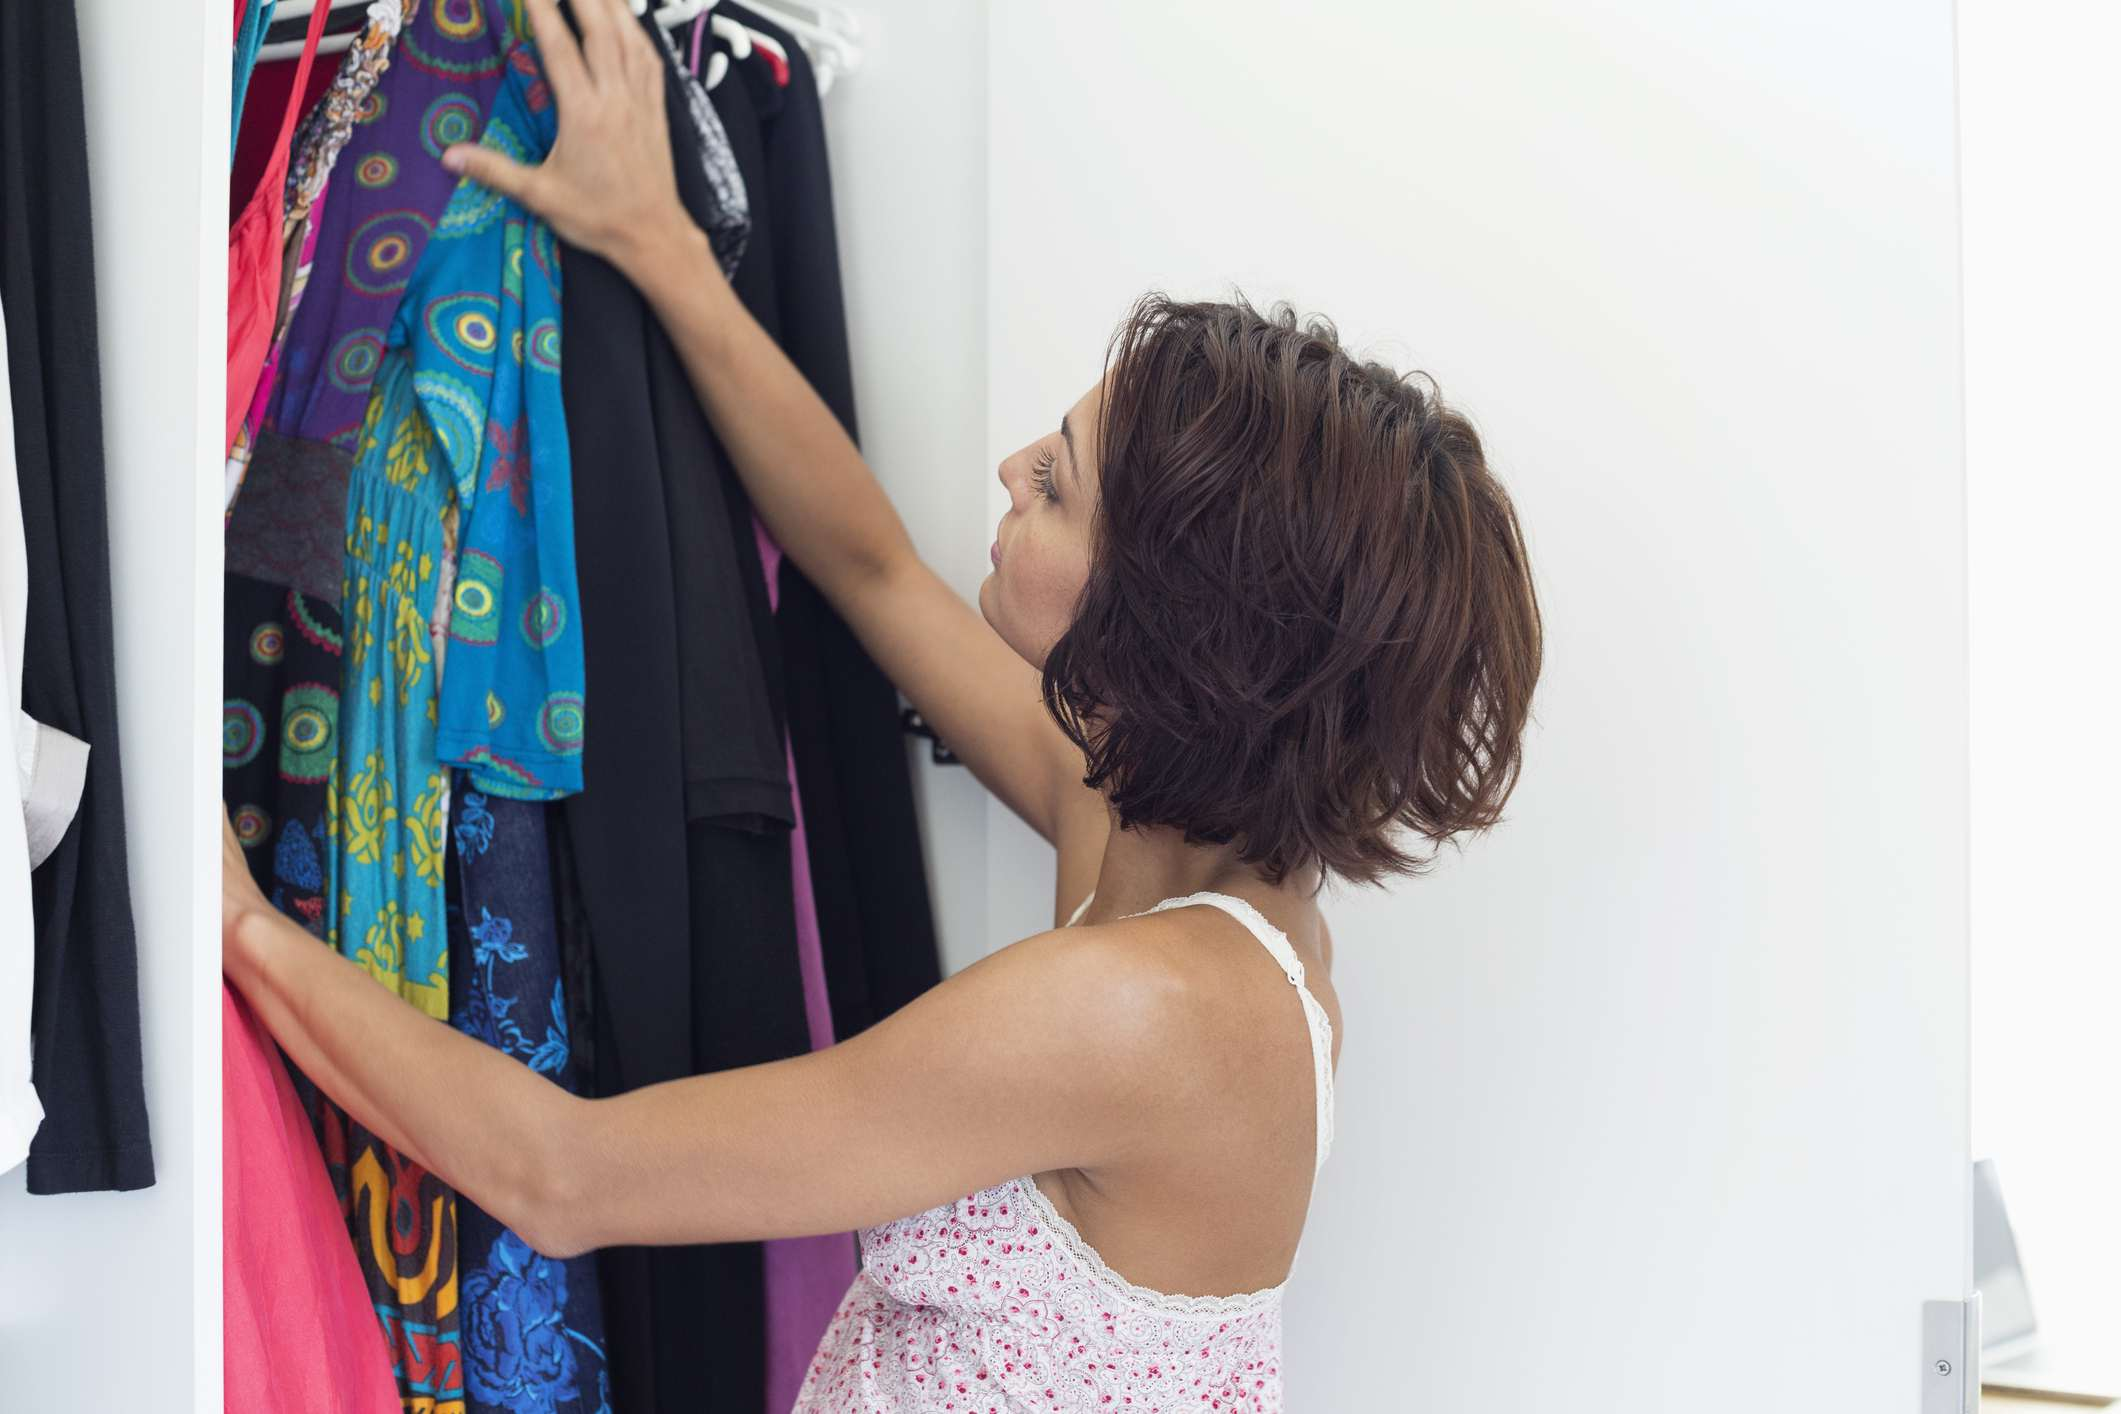 Woman looking at clothes hanging in a closet.